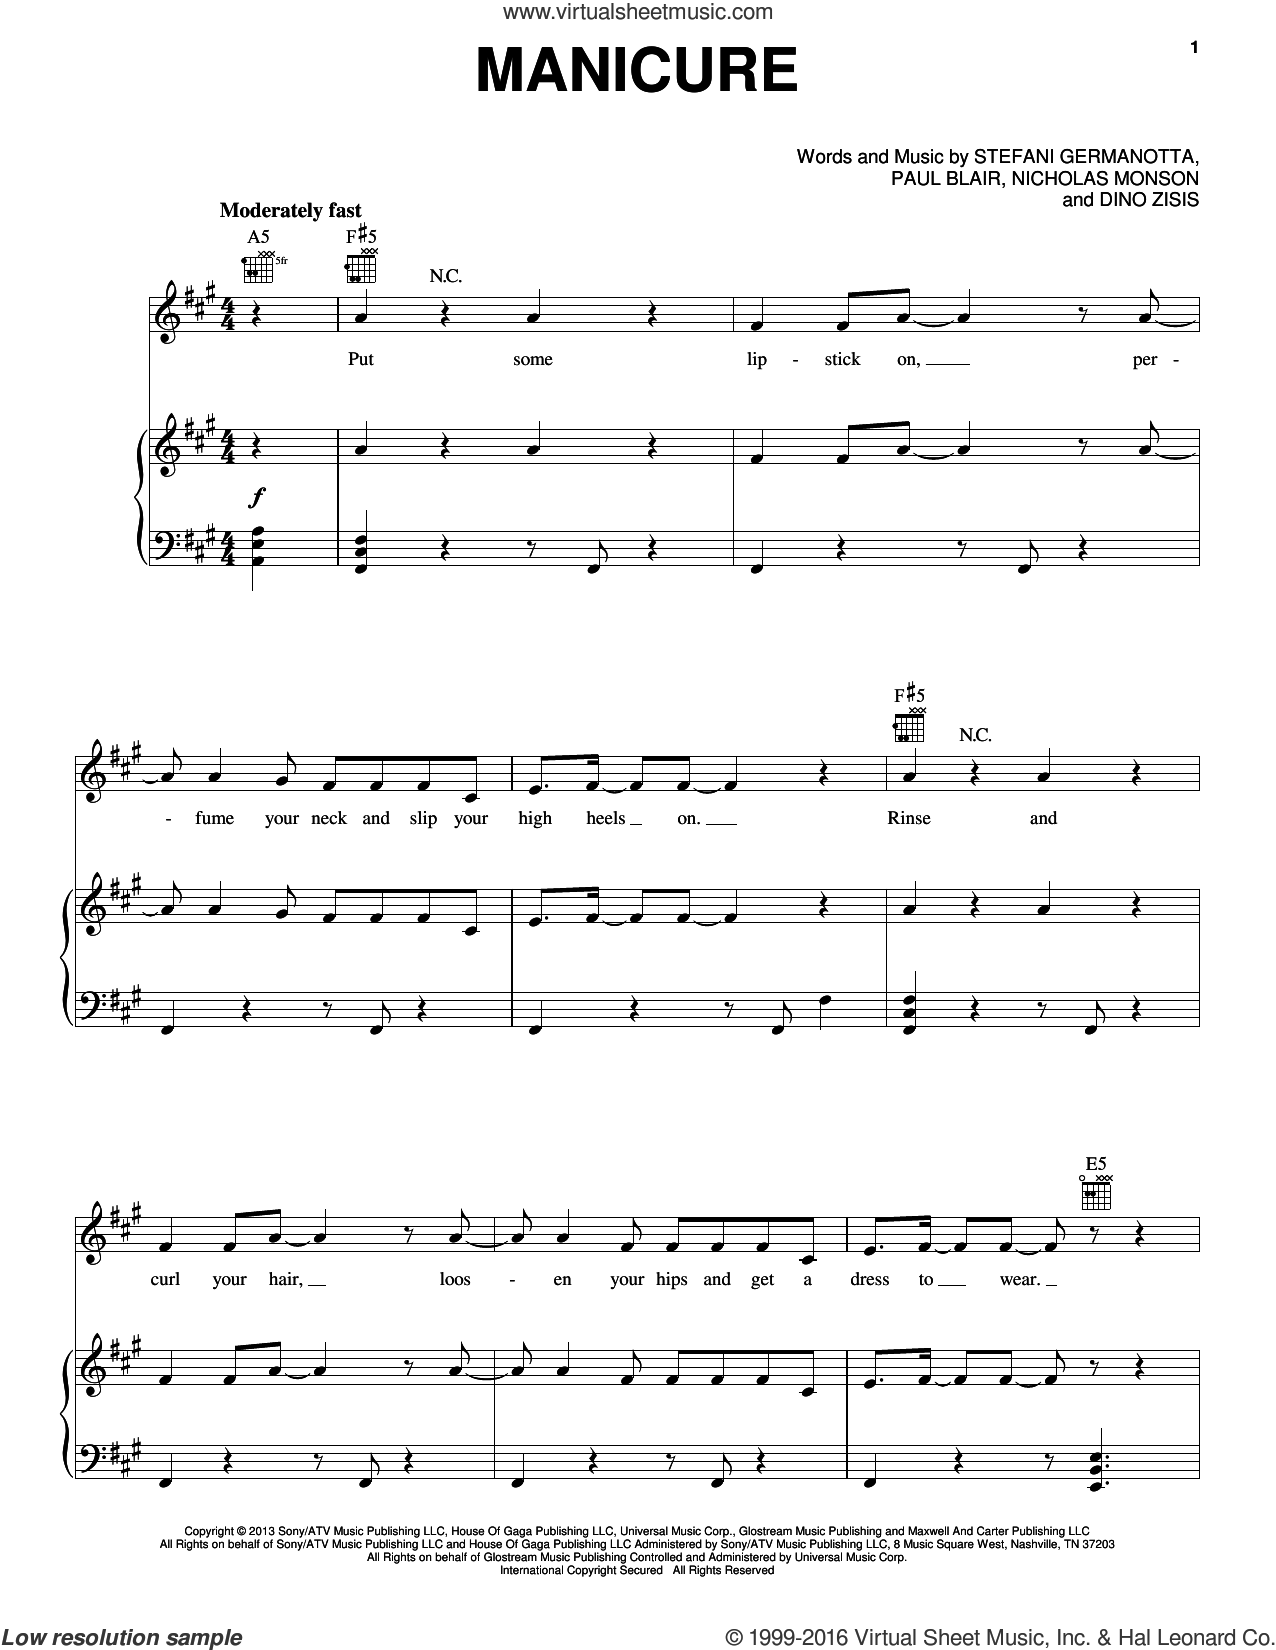 Manicure sheet music for voice, piano or guitar by Paul Blair